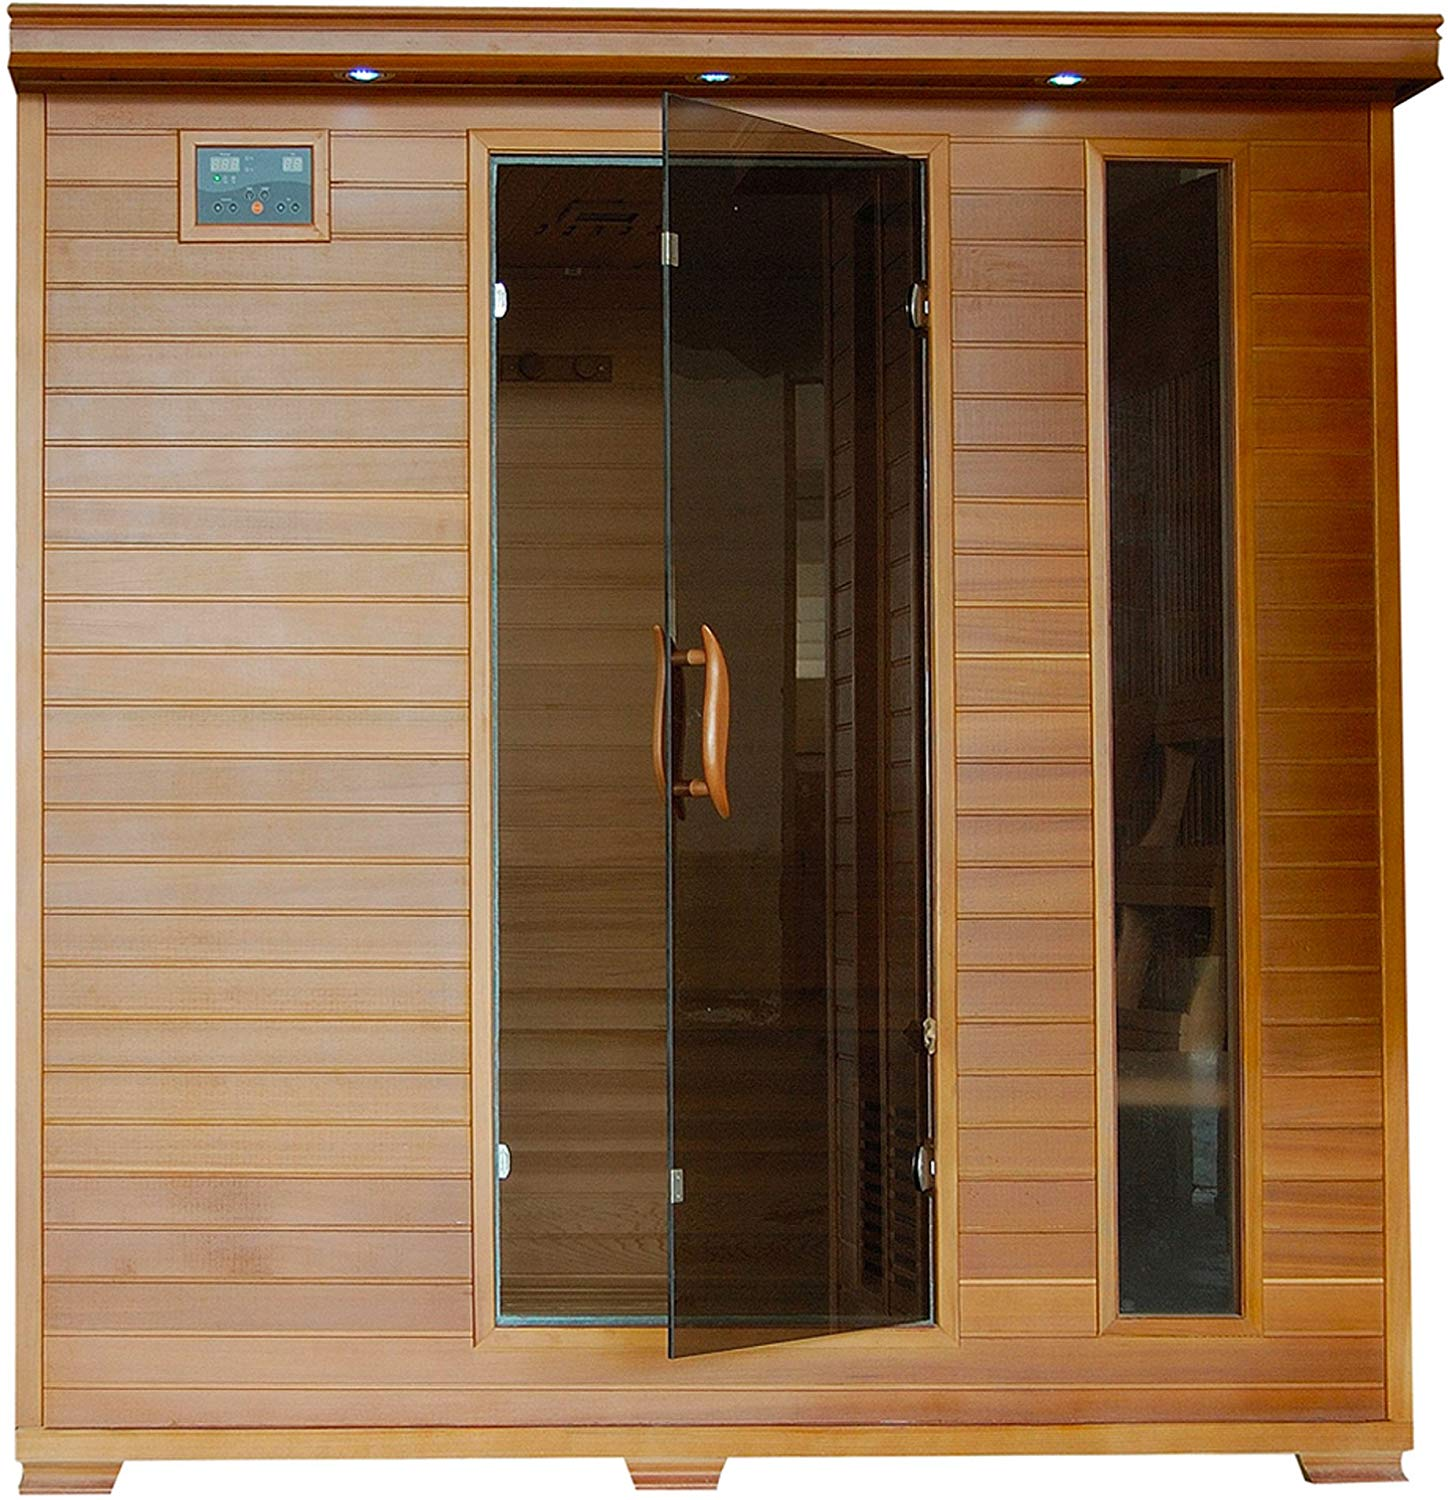 Radiant Saunas BSA1323 6-Person Infrared Sauna